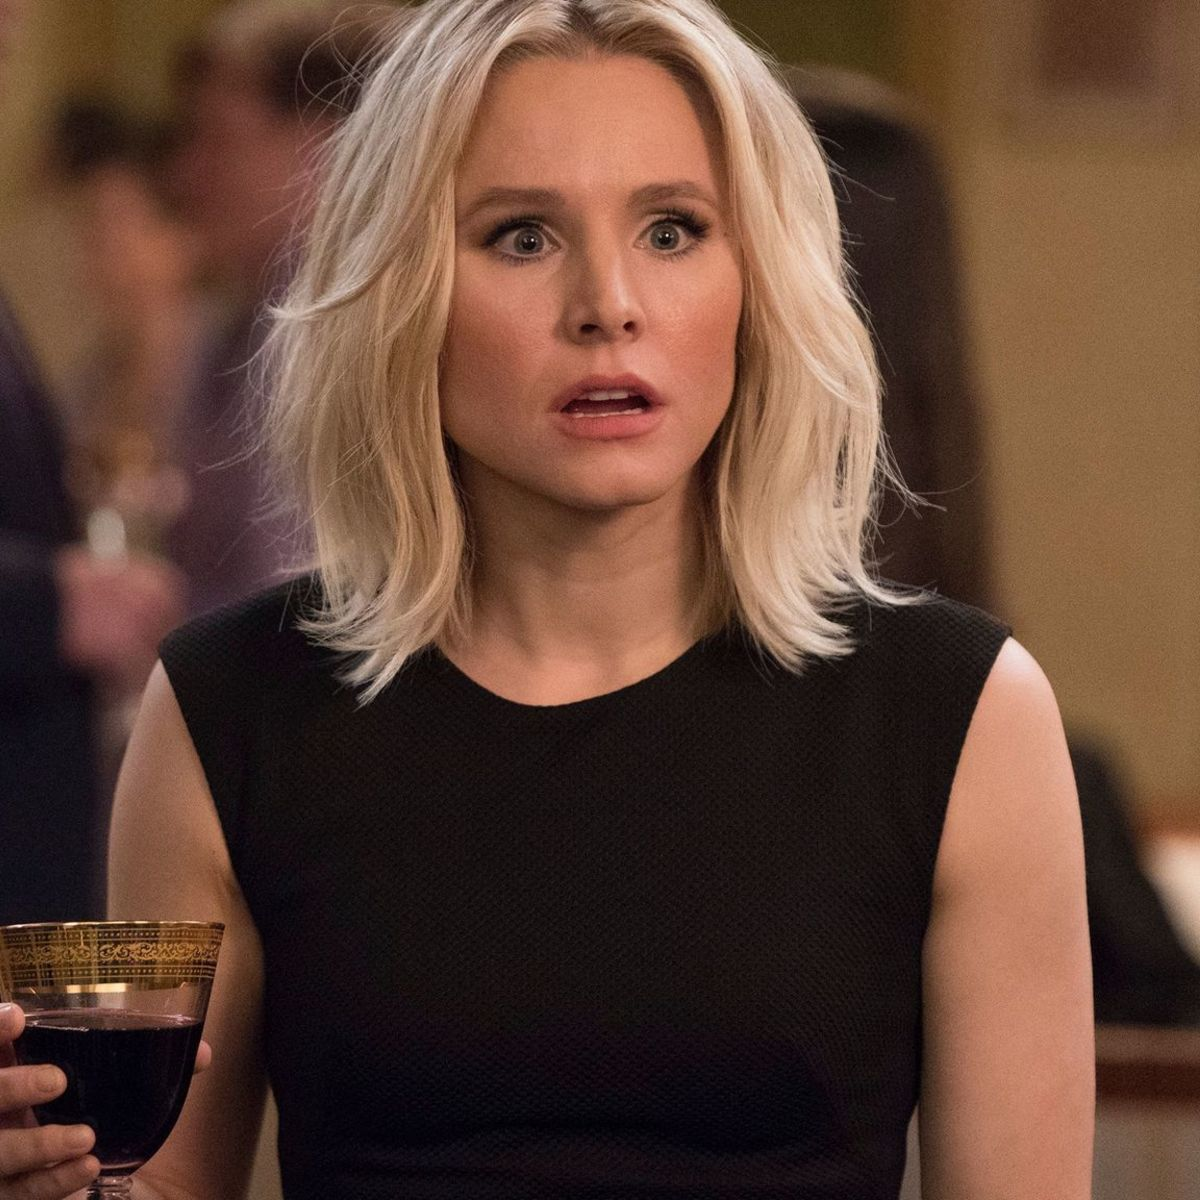 Eleanor-theGoodPlace